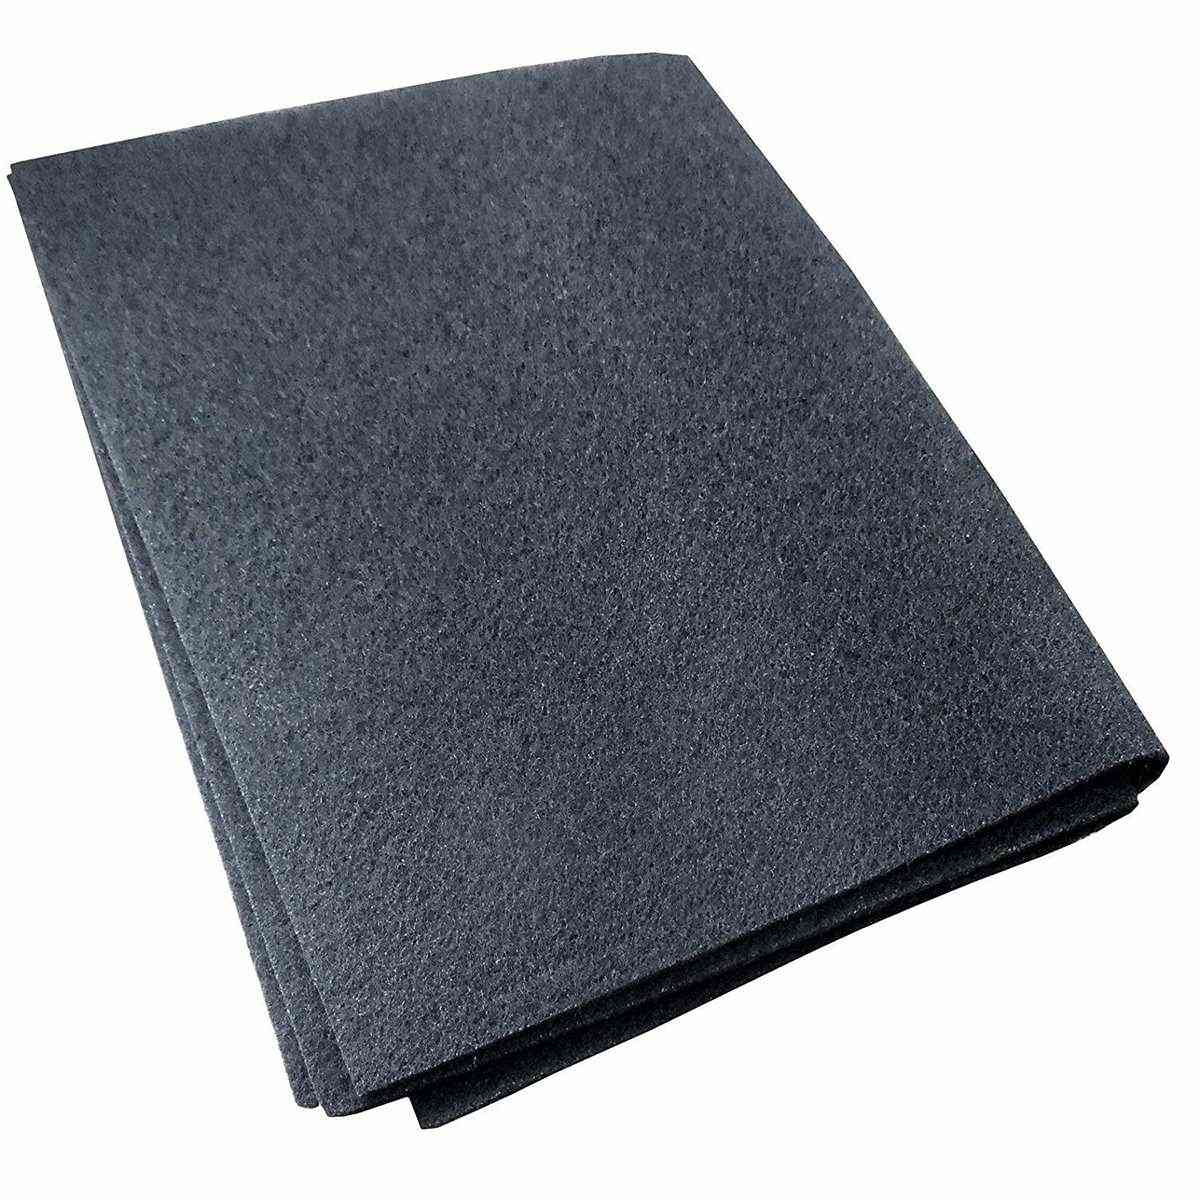 Carbon Cooker Hood Filter Cut To Size Charcoal Vent Filters For All Hoods